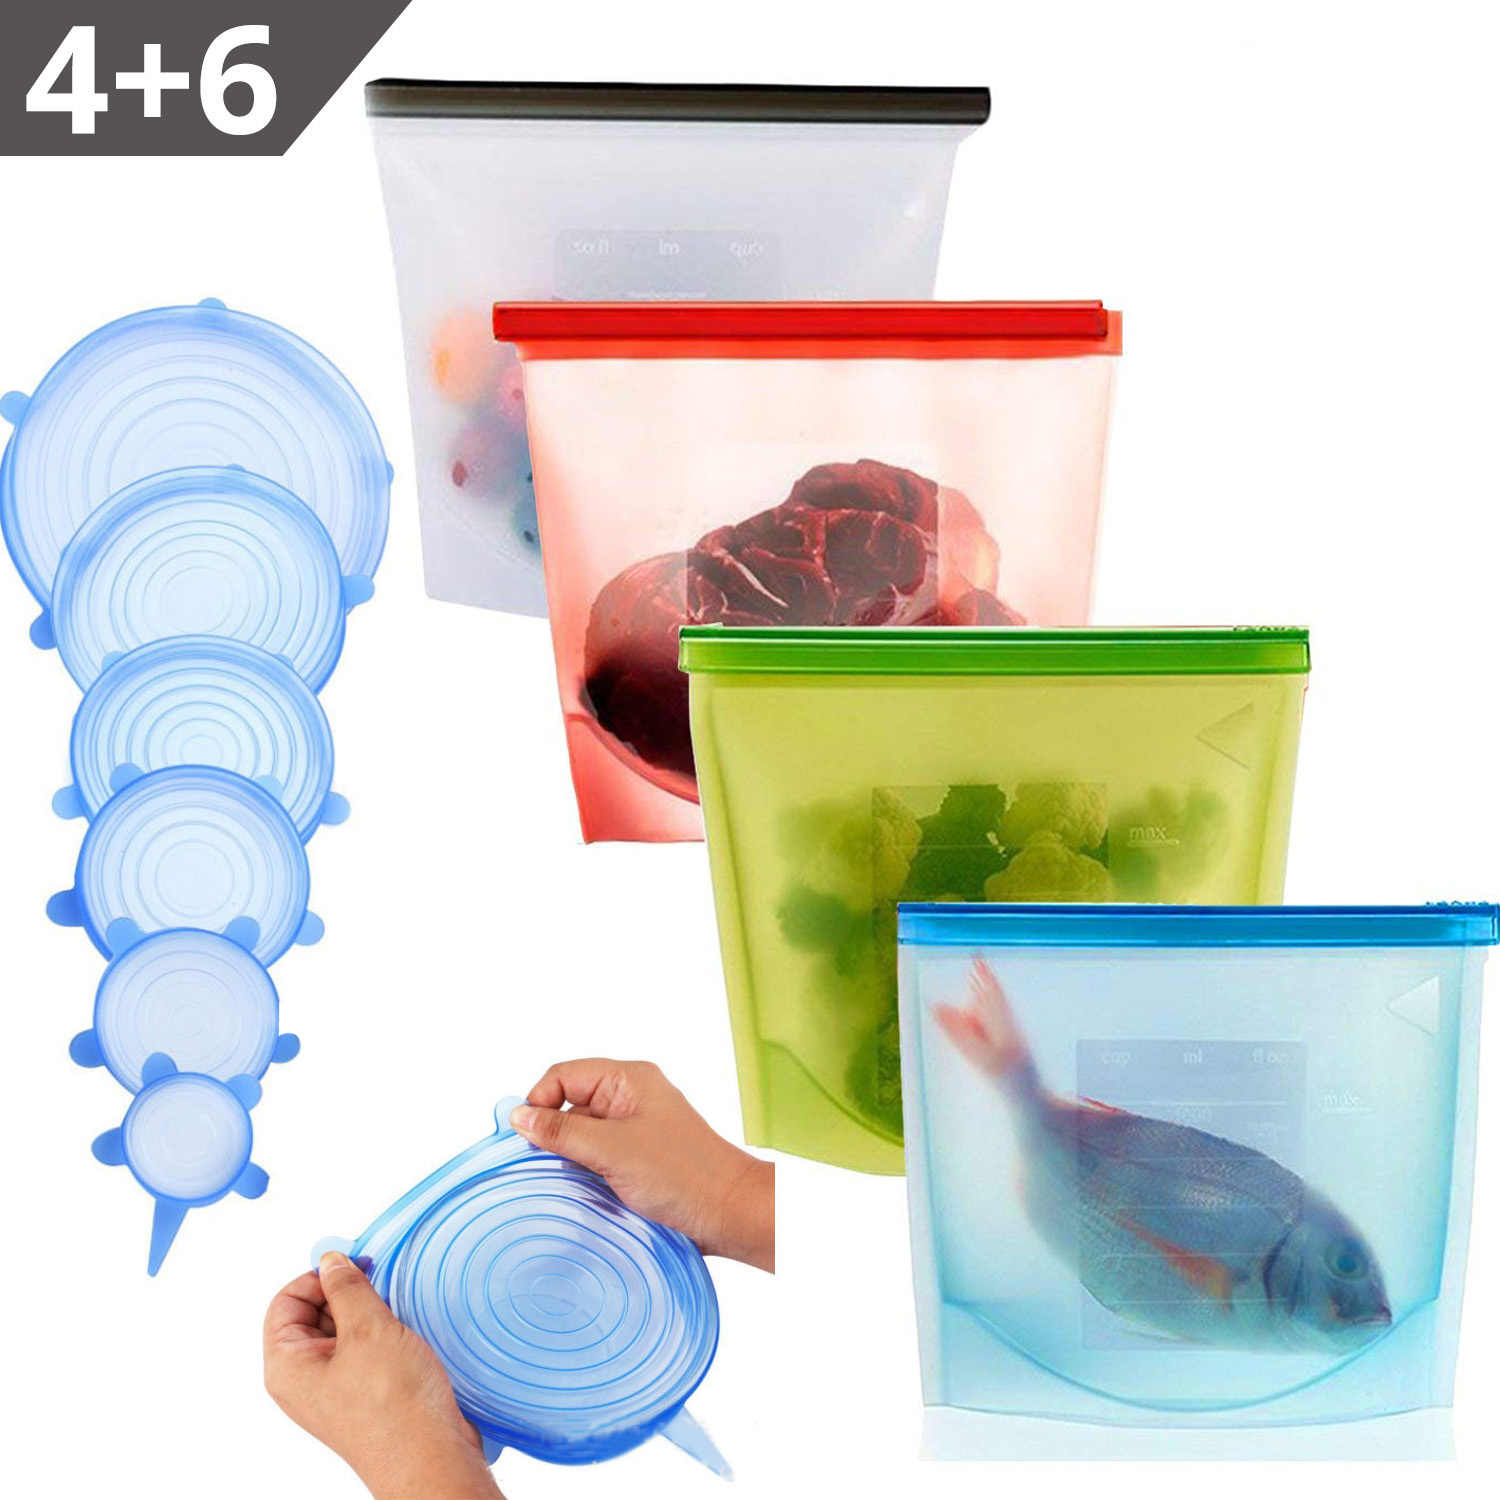 Silicone Storage Bag Silicone Stretch Lid Reusable Silicone Food Storage Bag Lids For Food and Bowl Covers Cooking Fresh Bags